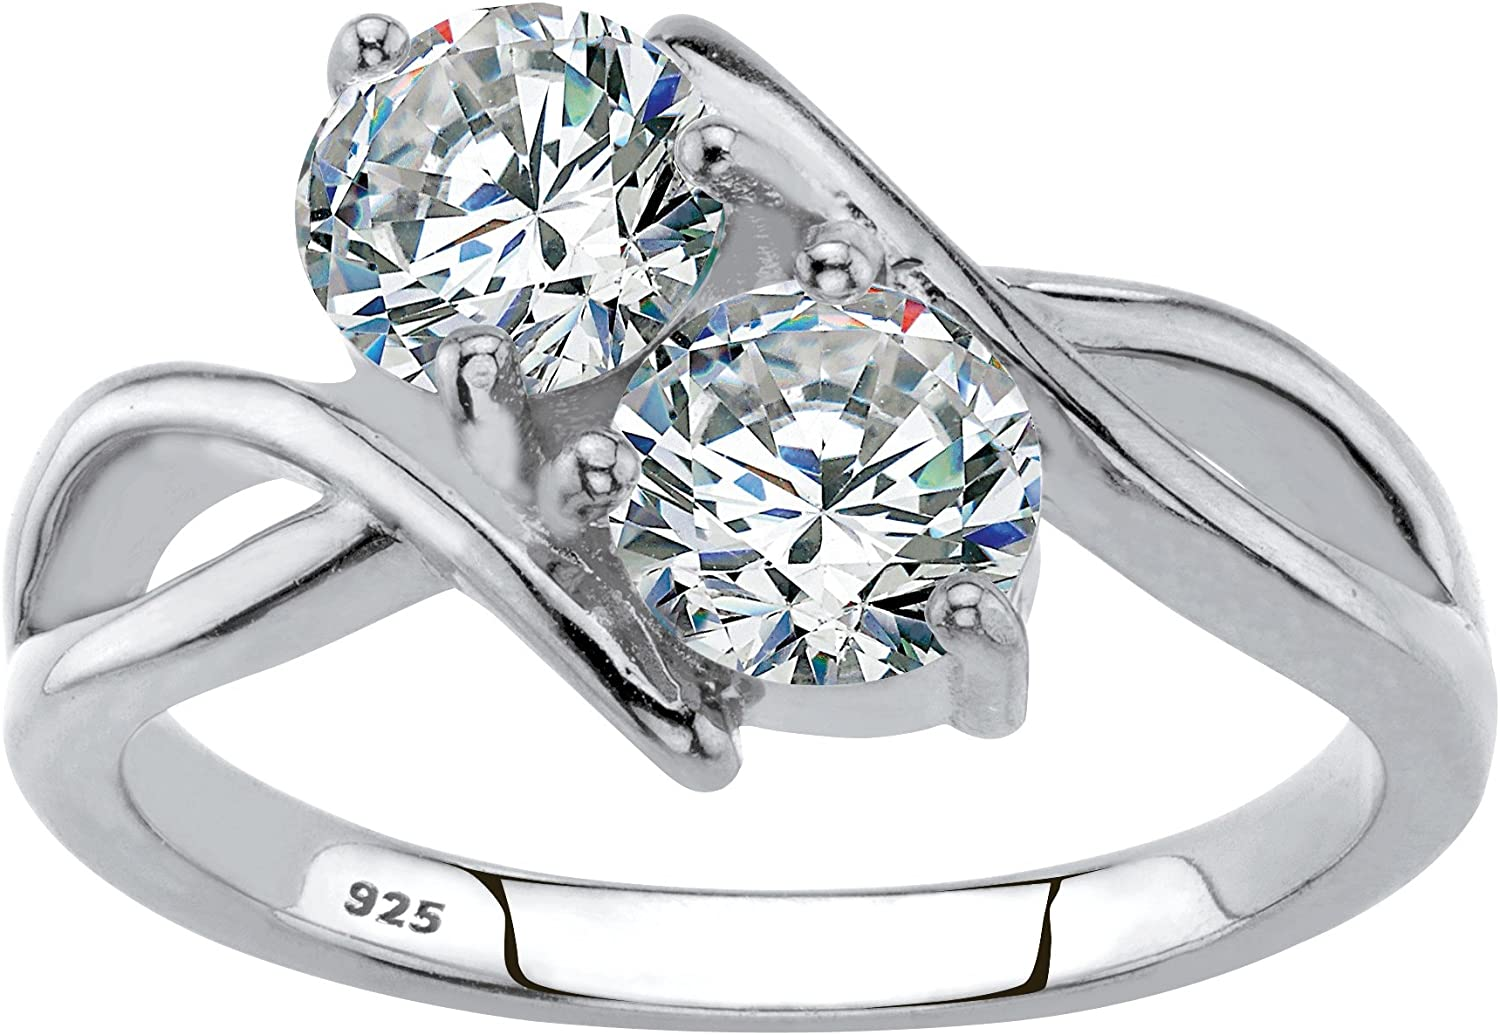 1.96 TCW Round Cubic Zirconia .925 Sterling Silver 2-Stone Bypass Ring